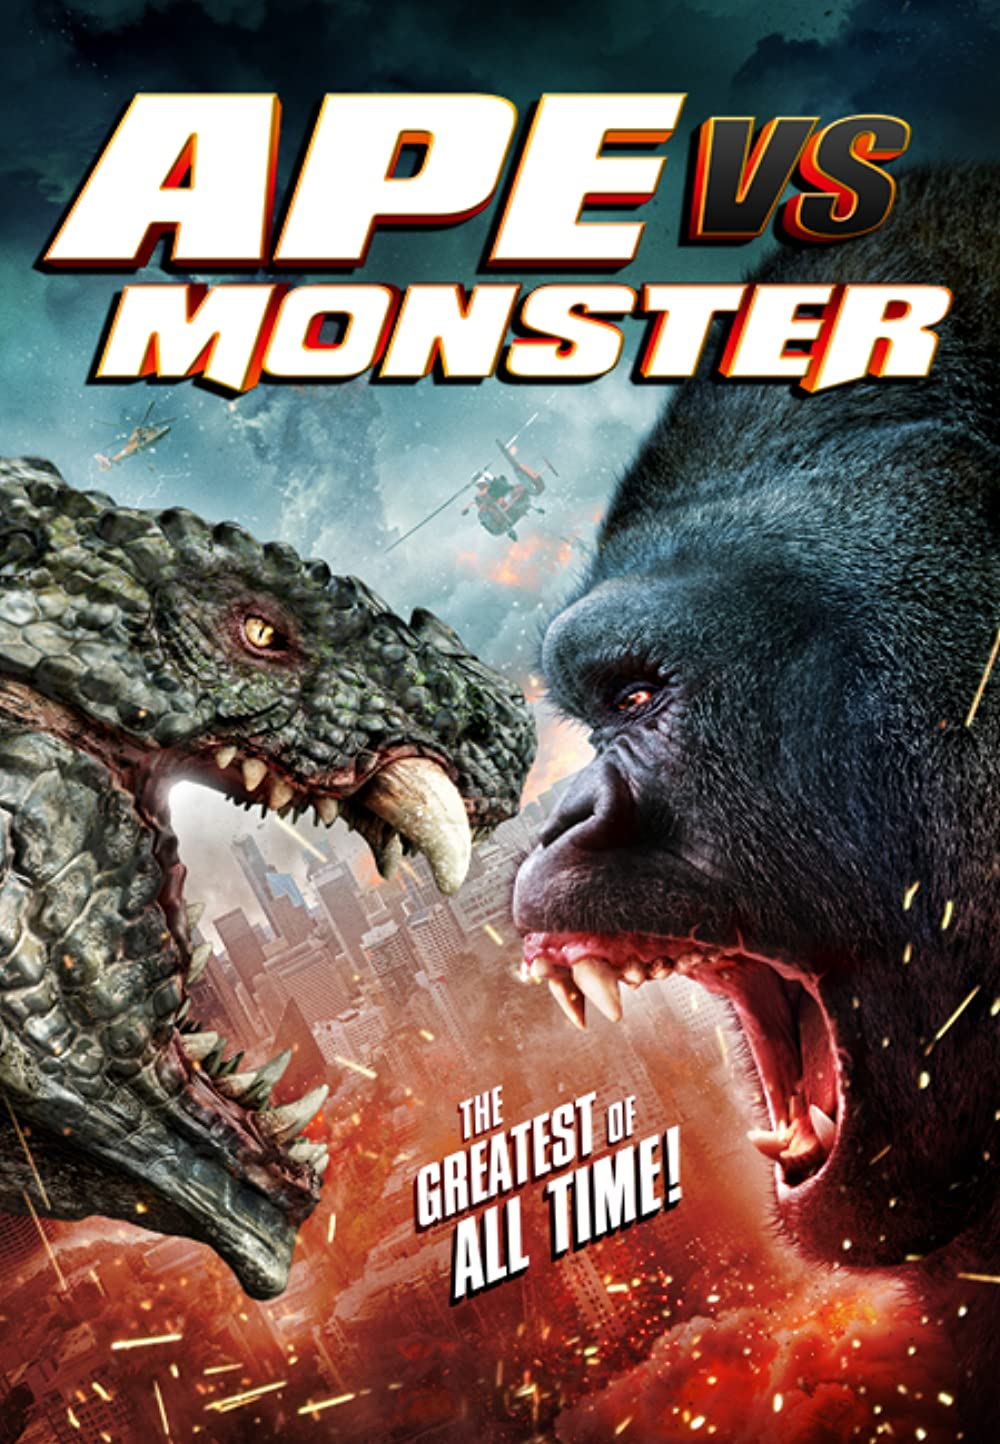 Ape vs. Monster 2021 English 720p HDRip 800MB | 283MB Download